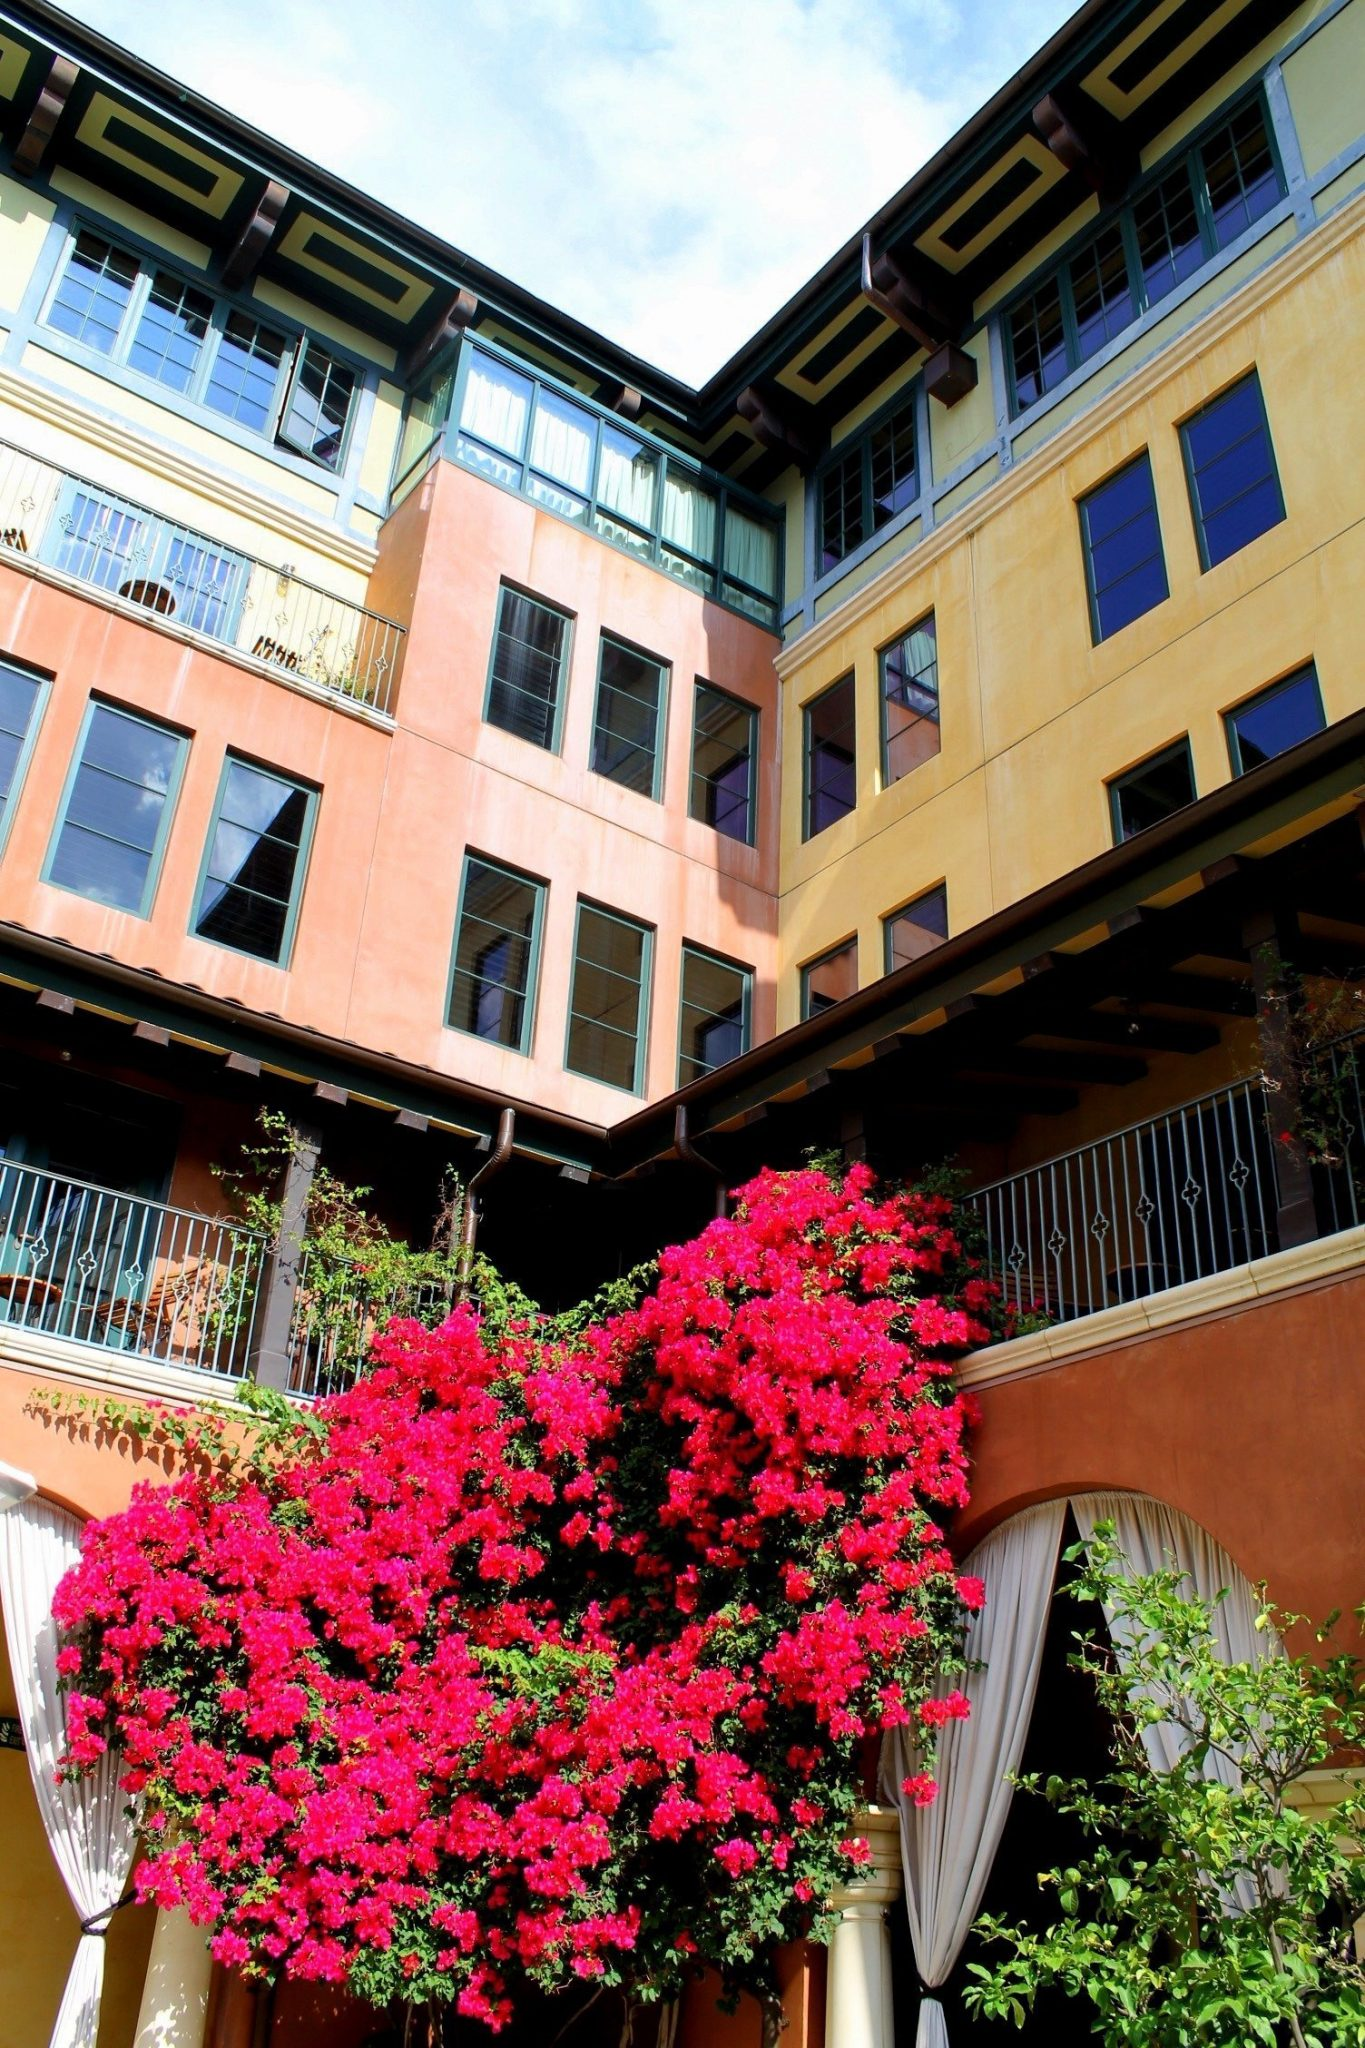 Wine Weekend Getaway with Hotel Valencia Santana Row - San Jose, California | USA Travel